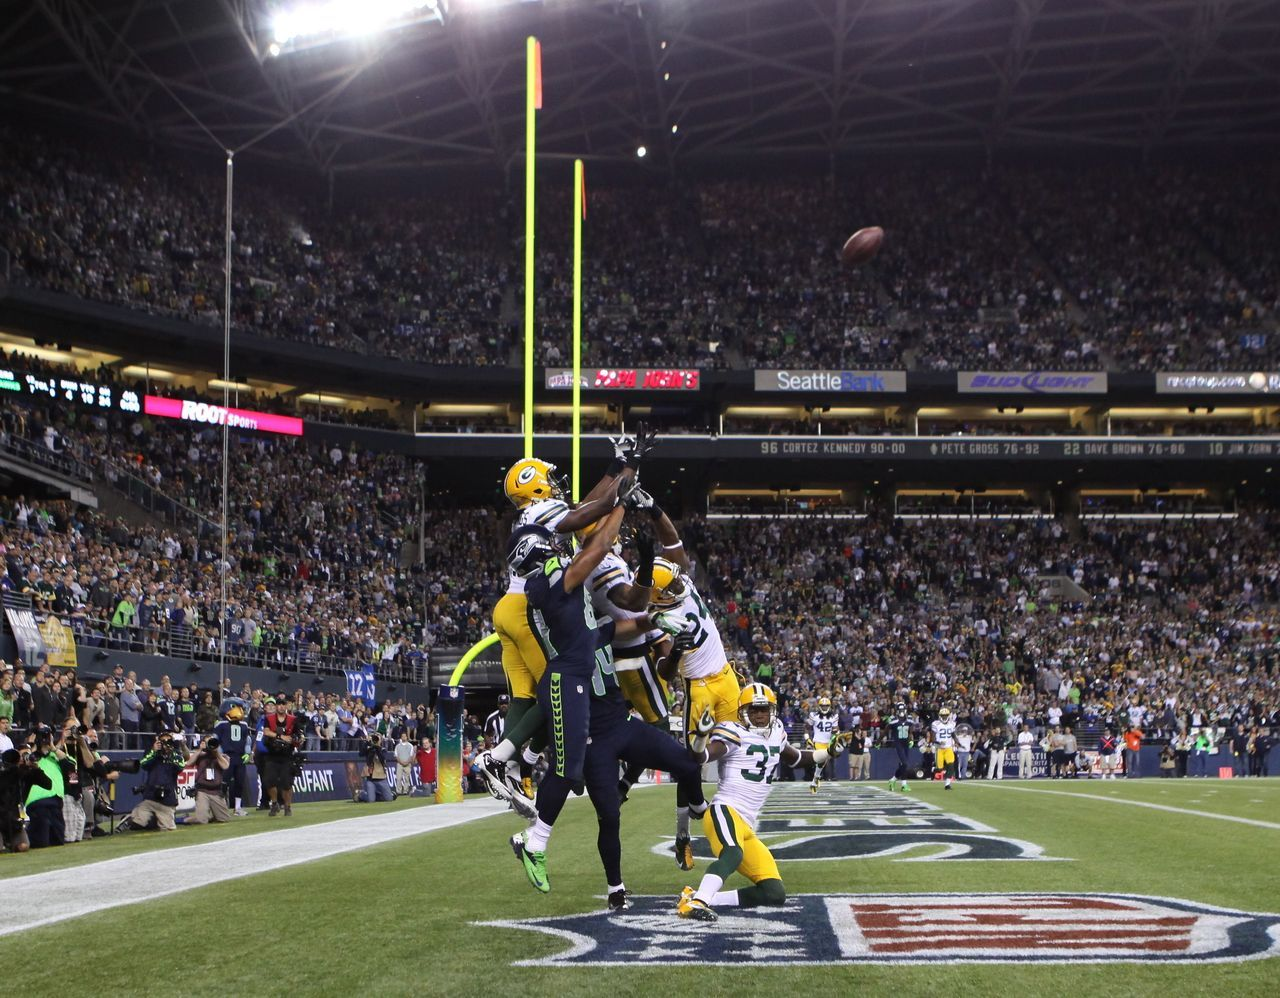 Russell Wilson's last-second Hail Mary heads toward the endzone during the fourth quarter of Monday's Packers-Seahawks game. Golden Tate would come down with the  catch to give Seattle a controversial 14-12 victory. (Otto Greule Jr/Getty Images) BURKE: Tate's catch highlights another ref debacleVIDEO: Watch the controversial final play | Highlights